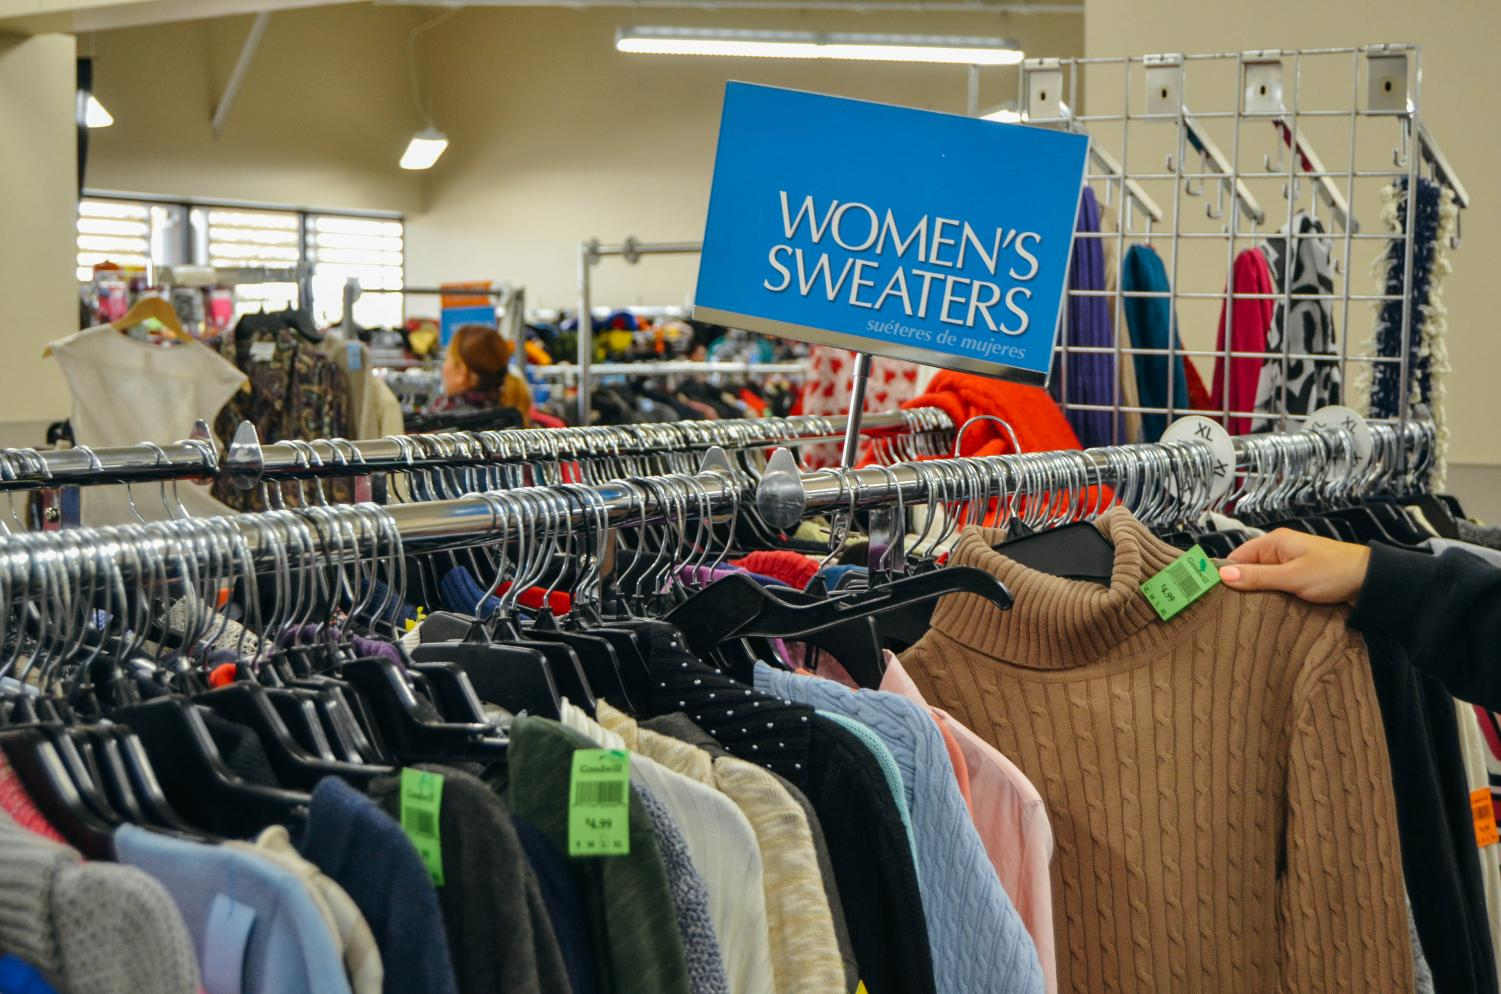 Goodwill, pictured above, has a location in Hinsdale with racks full of sweaters and long sleeve tops that are perfect for the colder weather.